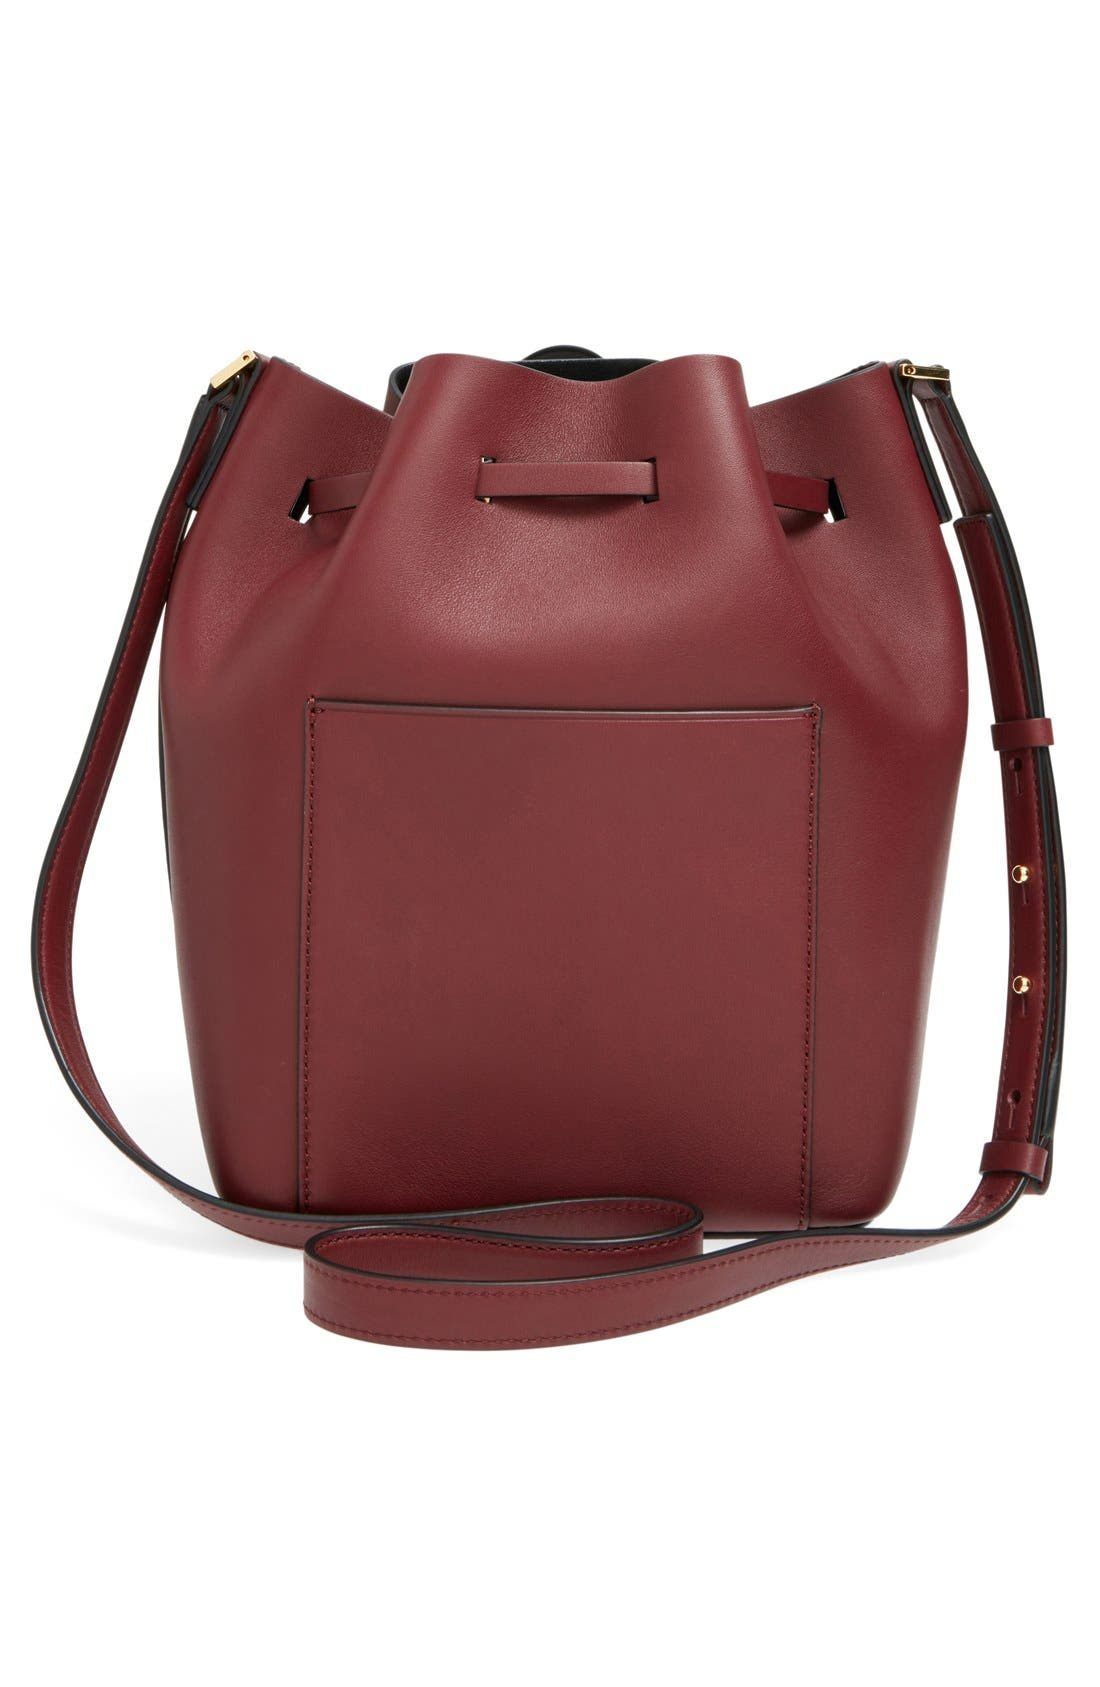 Alternate Image 3  - Michael Kors 'Medium Miranda' Bucket Bag